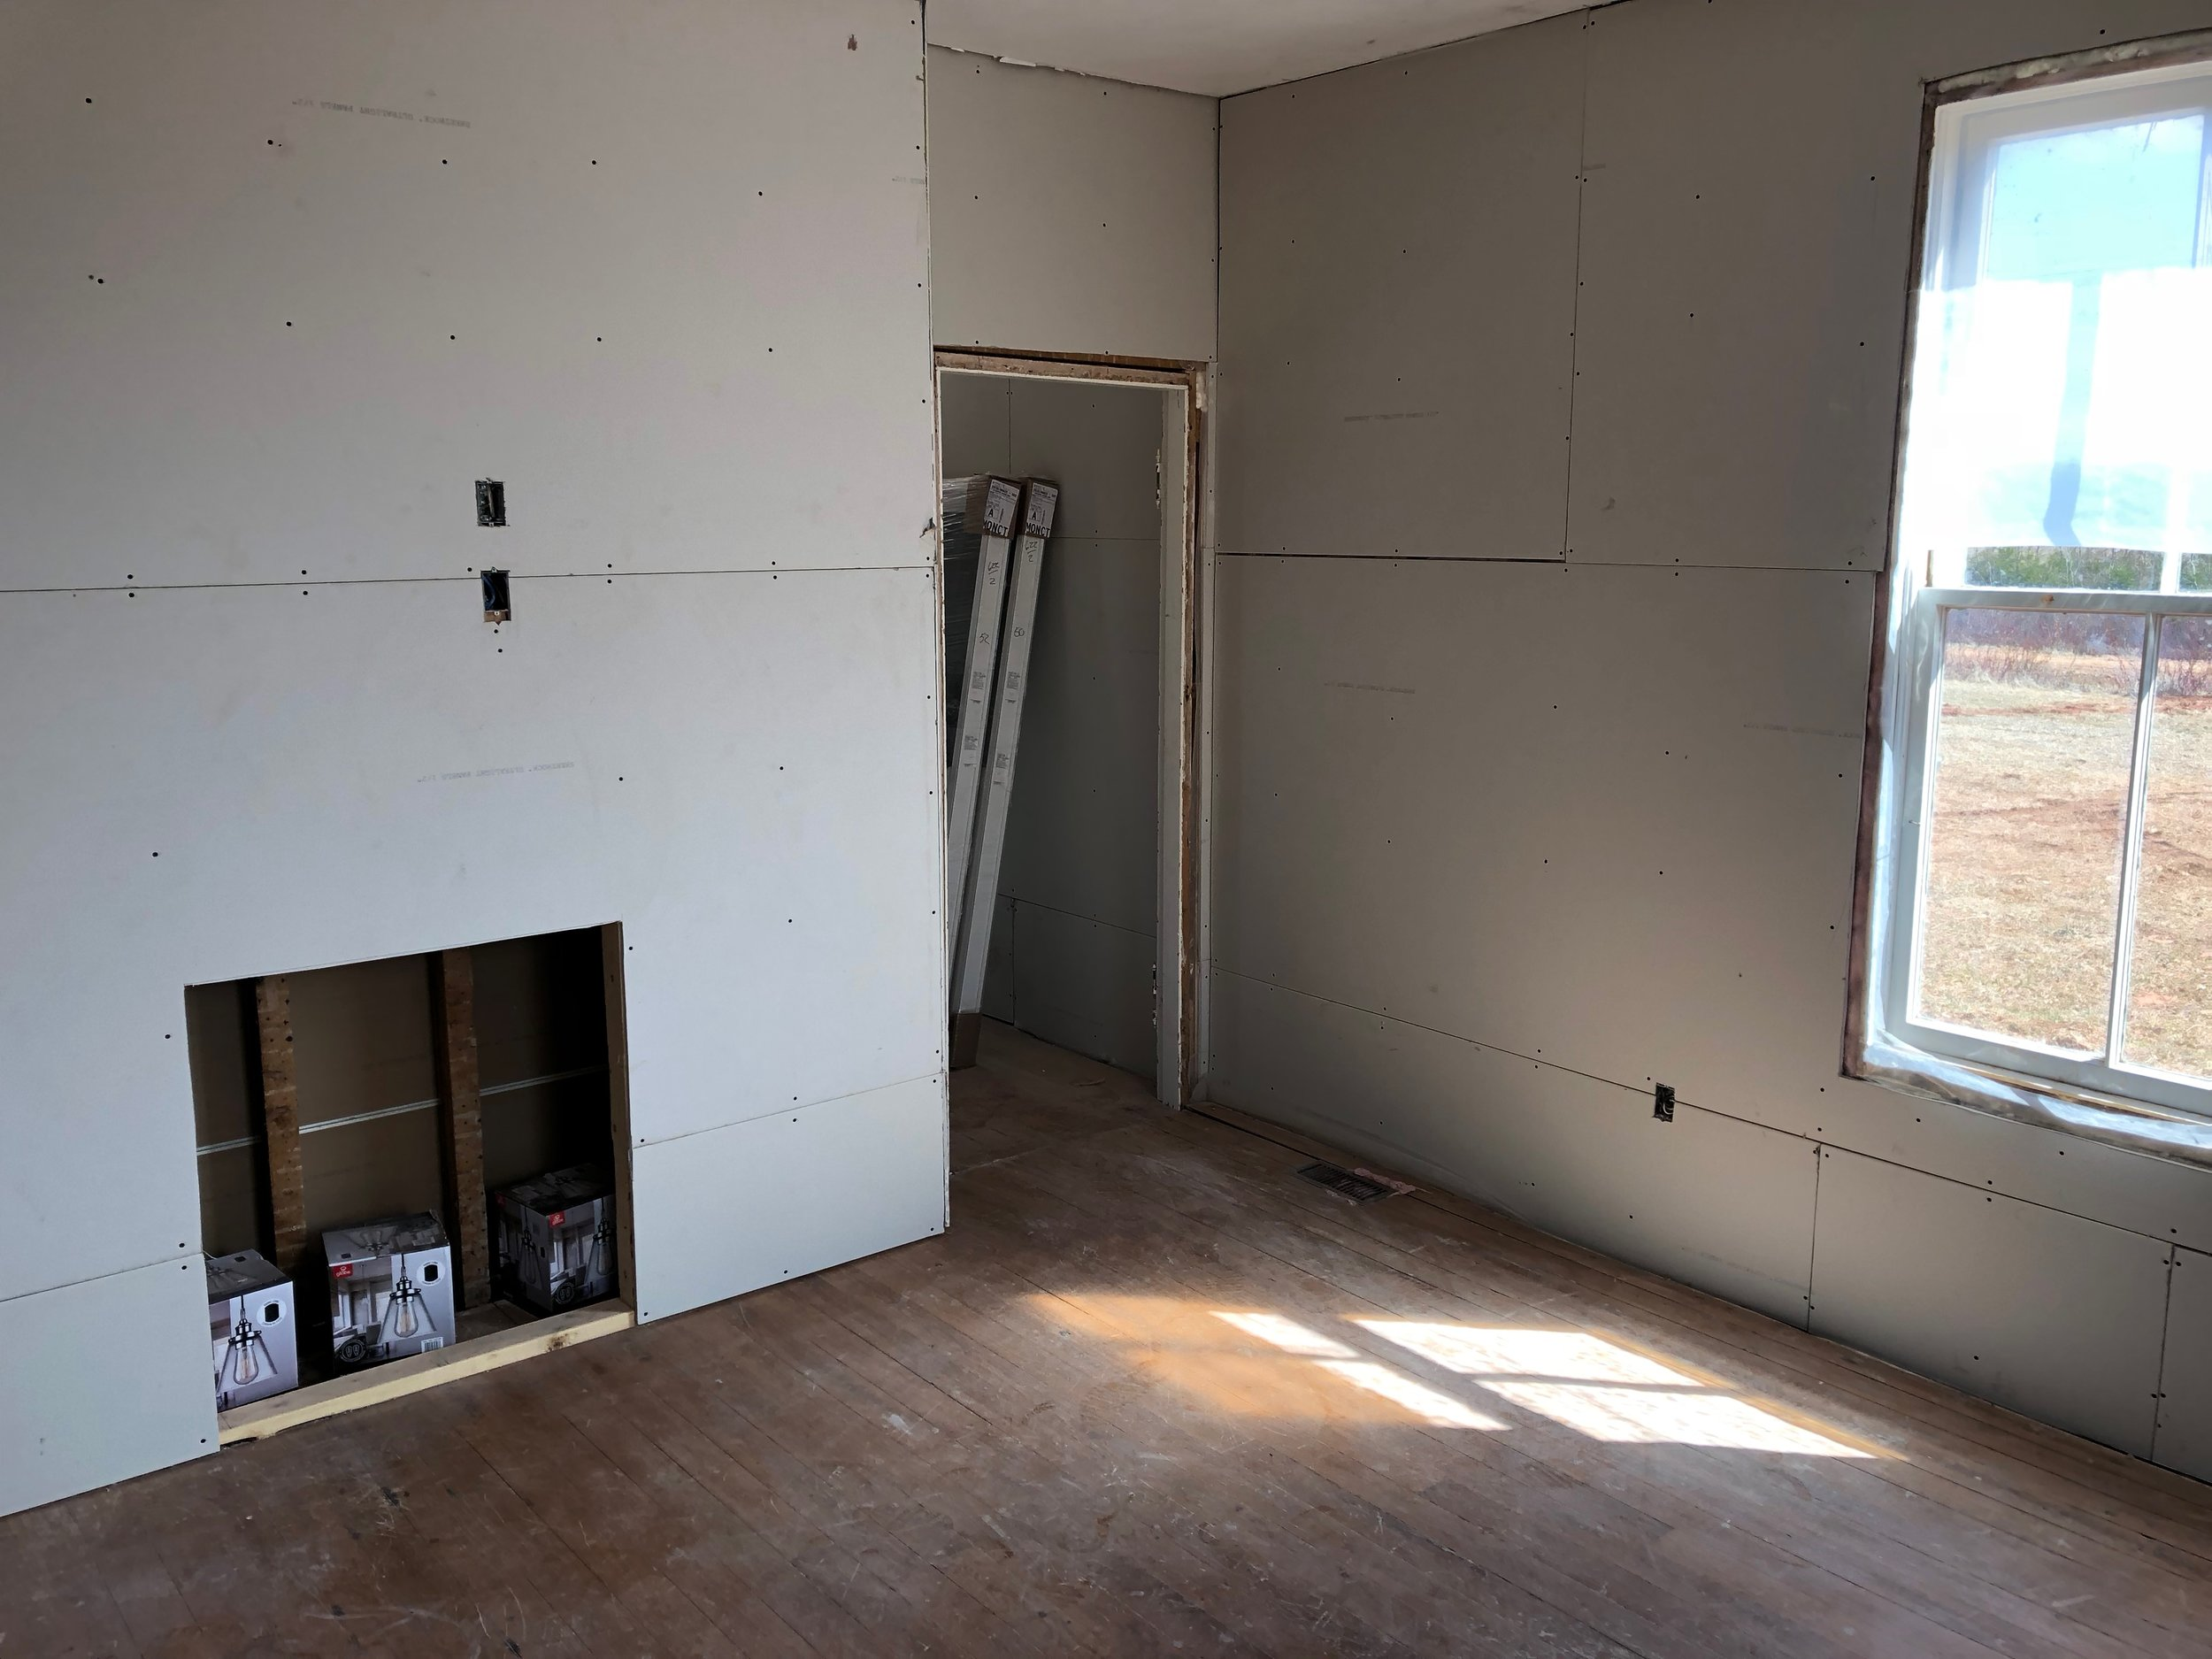 More dry wall